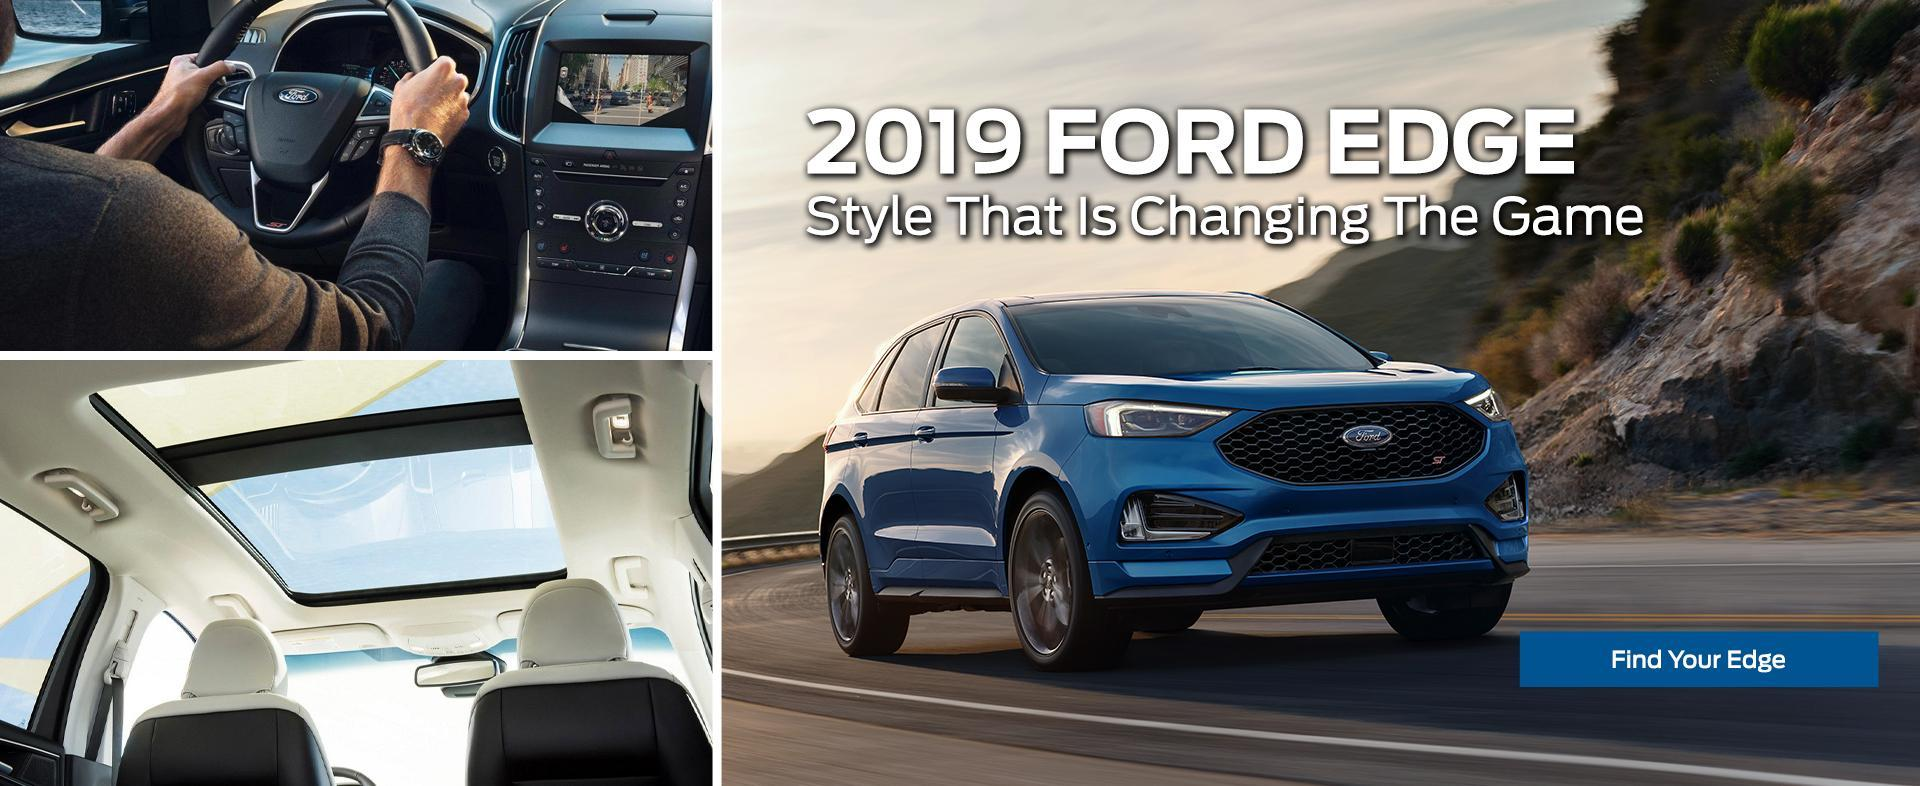 Ford Home 2019 Ford Edge